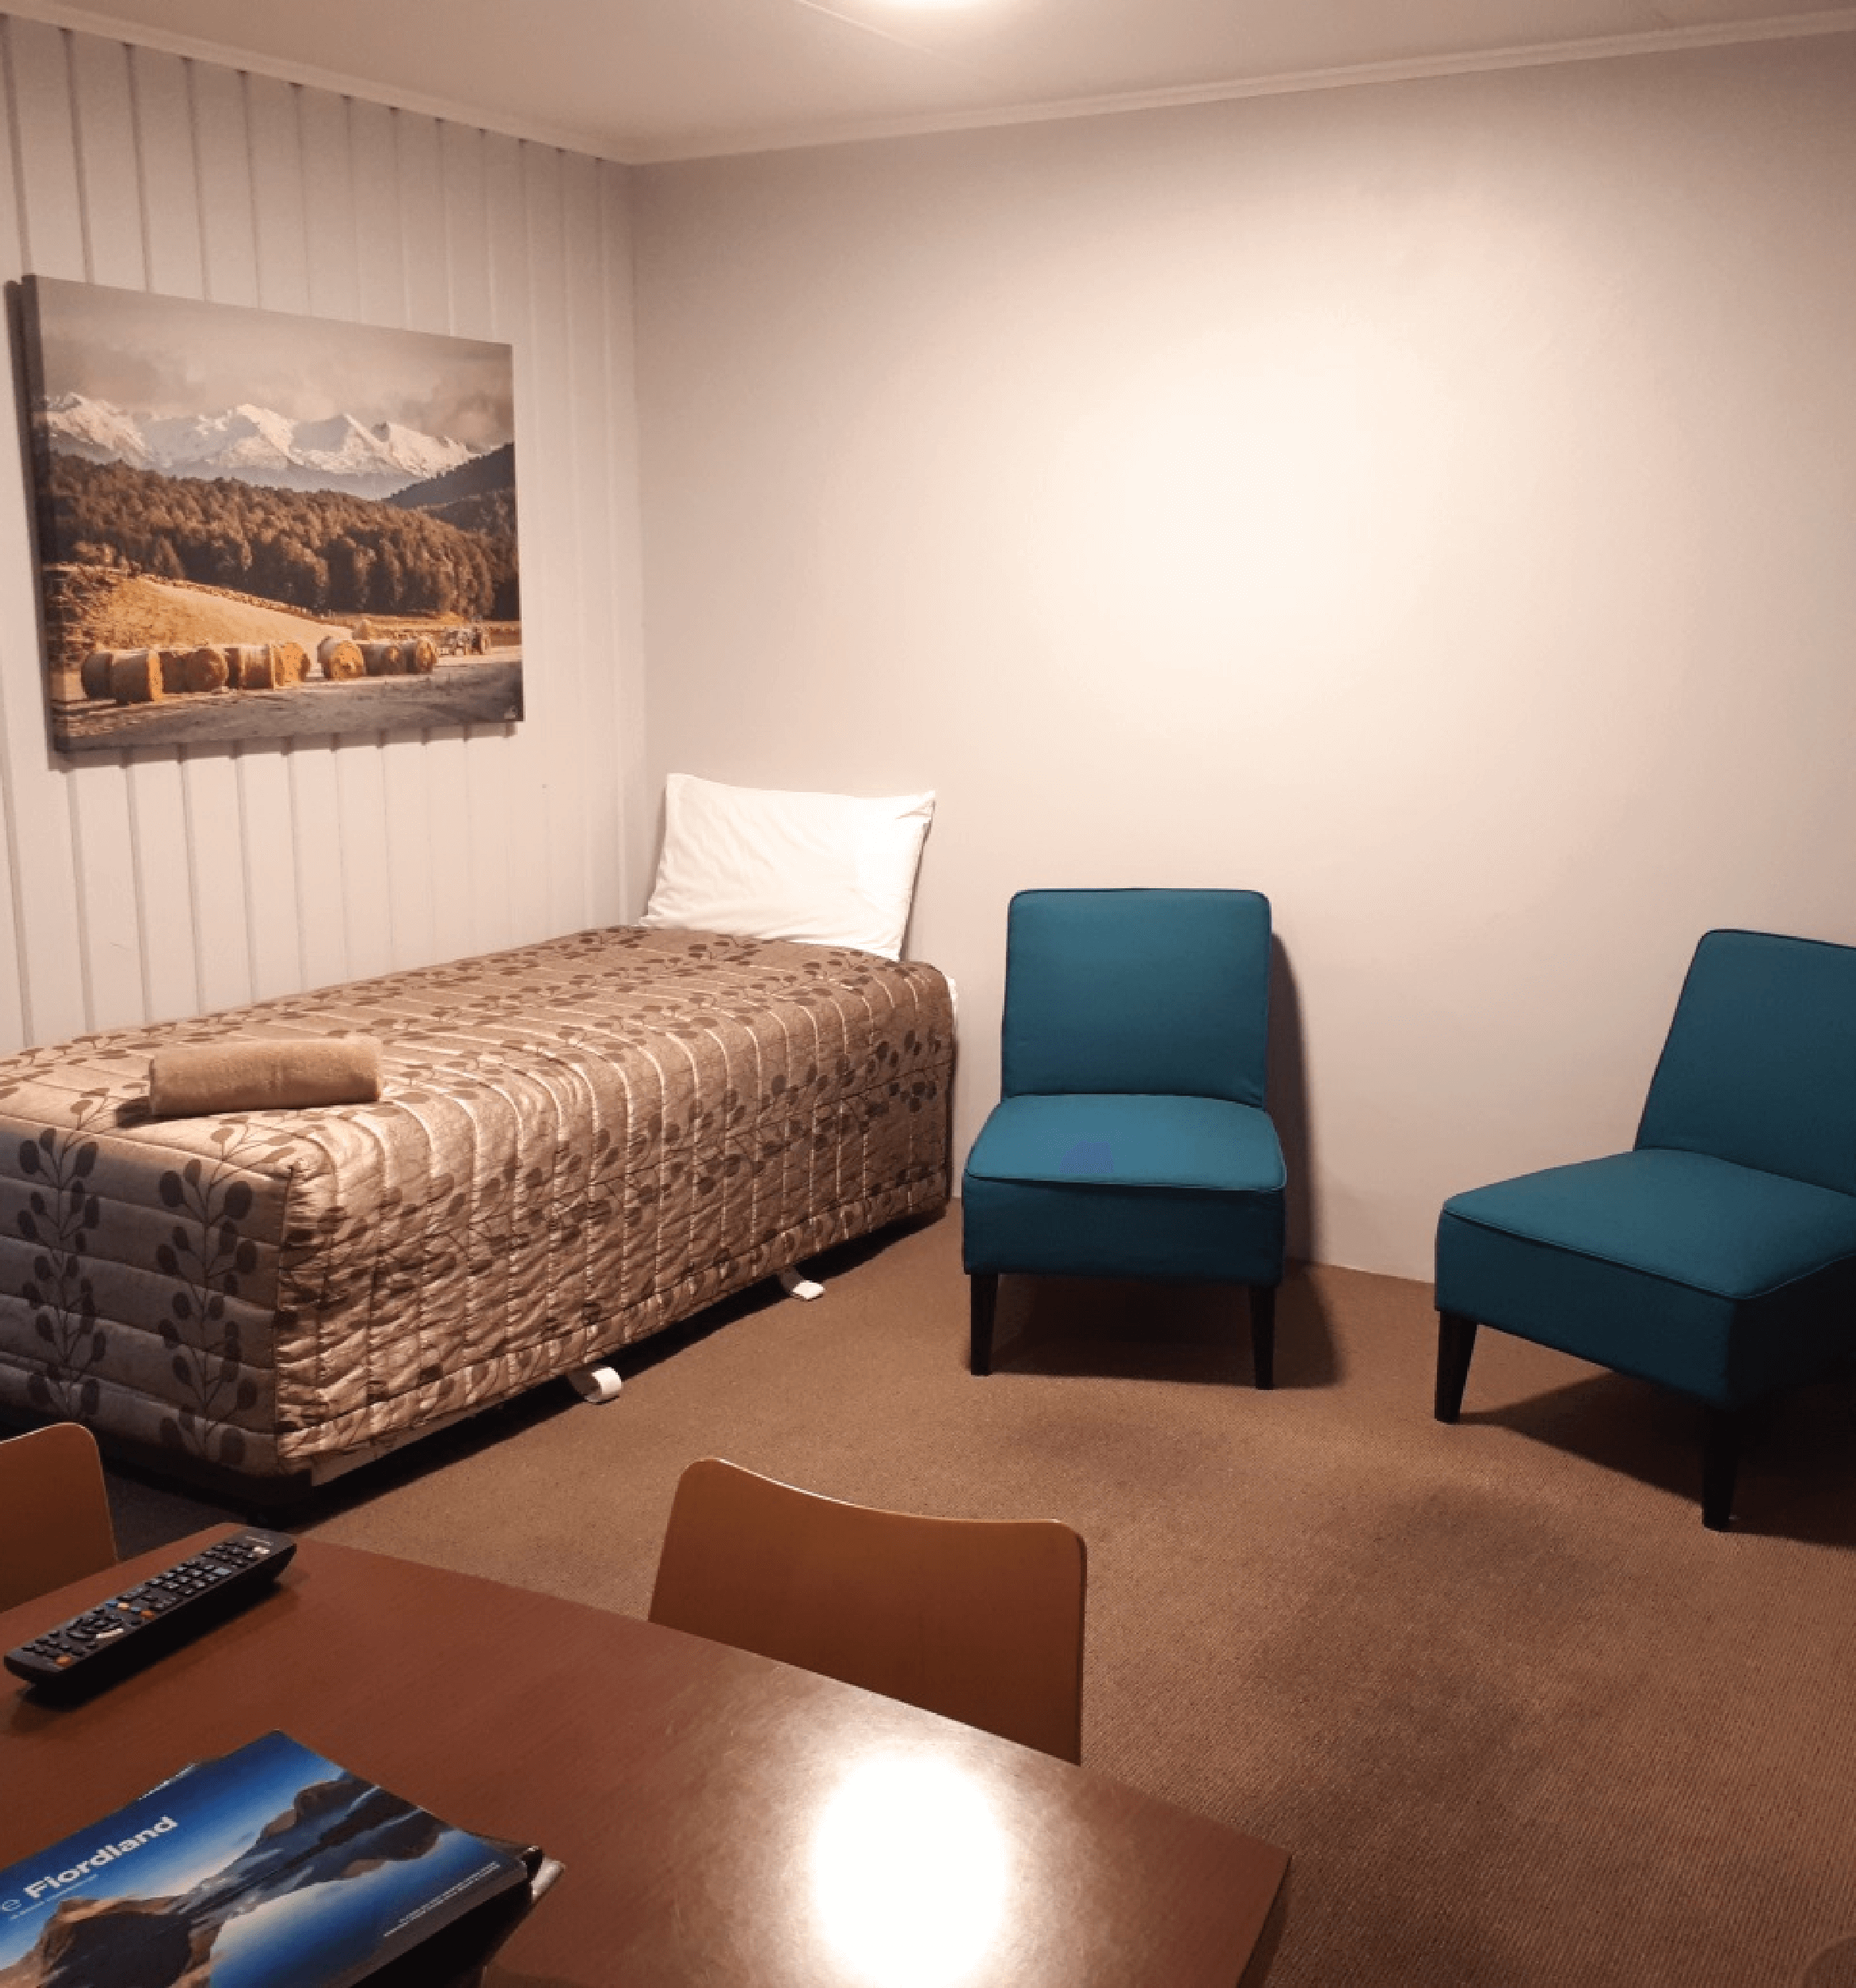 The lounge area of Edgewater Motels standard room. Includes a bed and two seats and table.